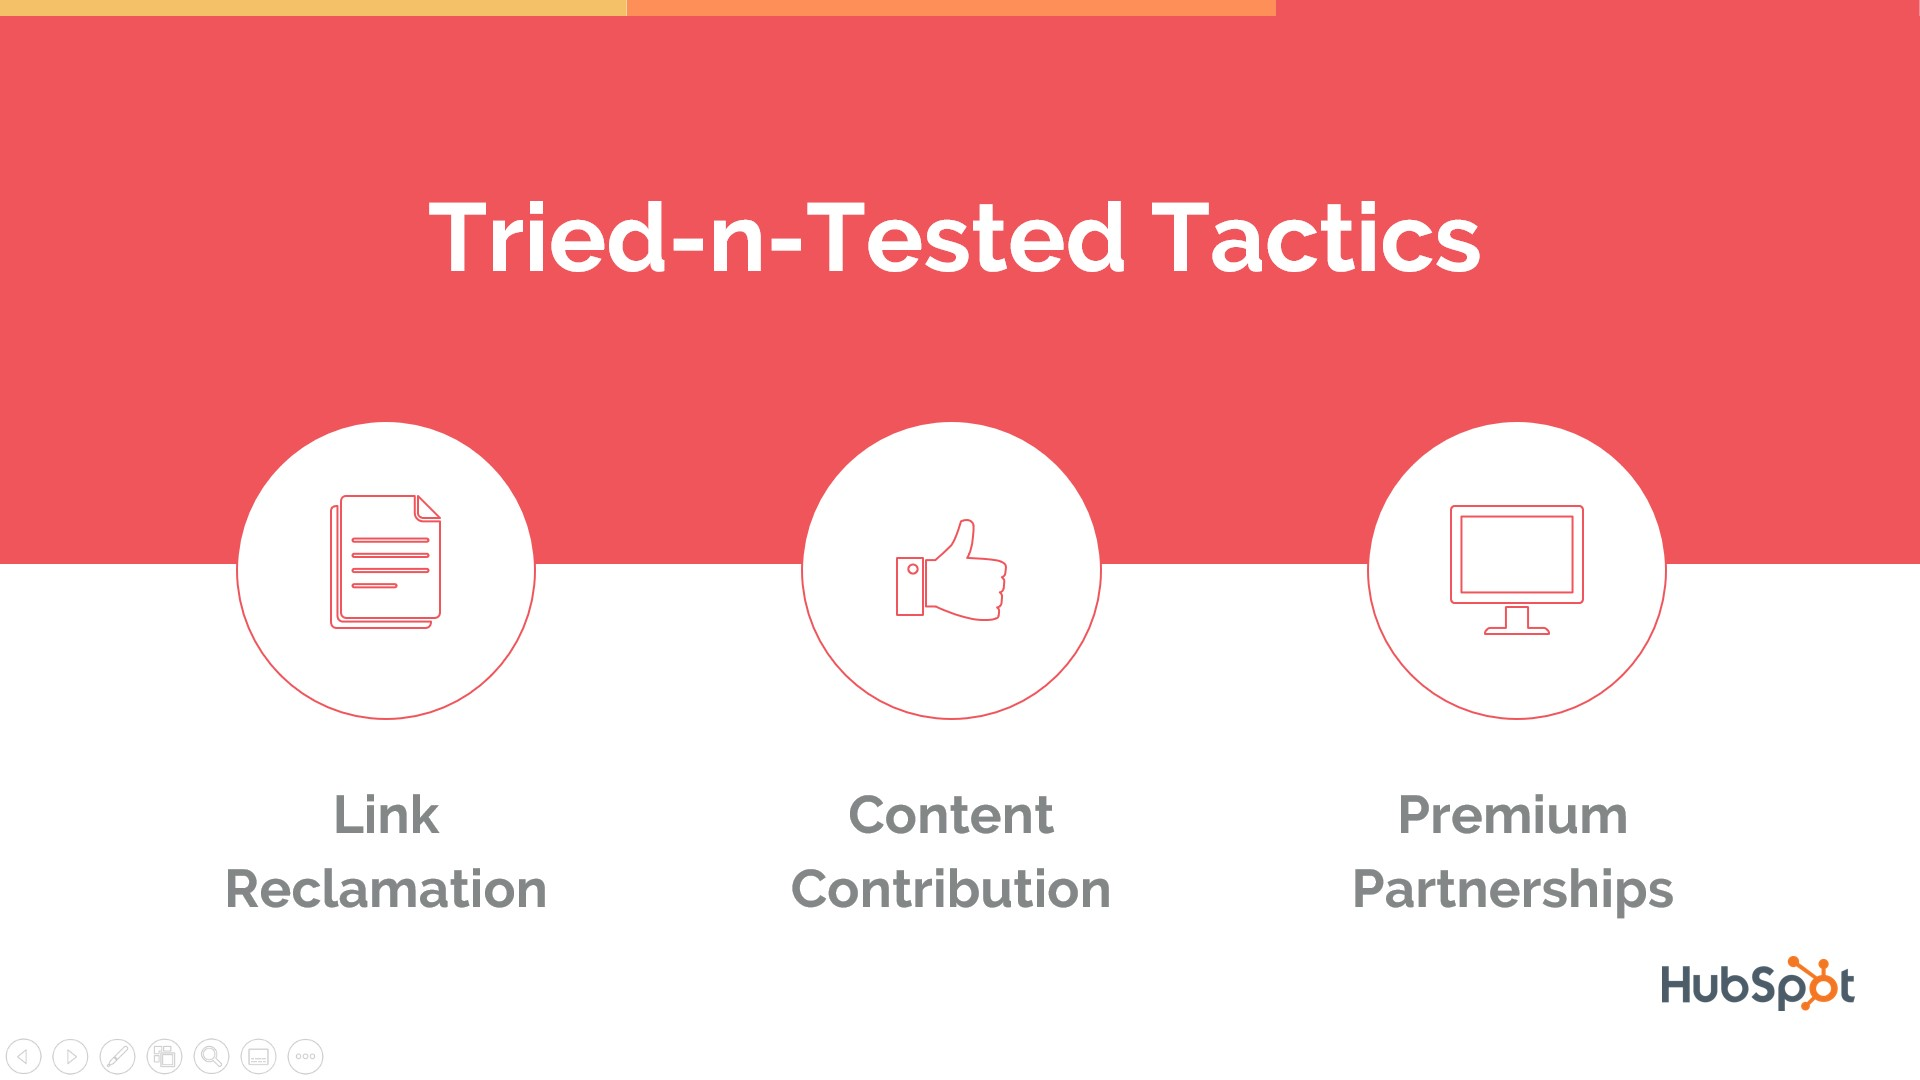 Tried and tested tactic for link building